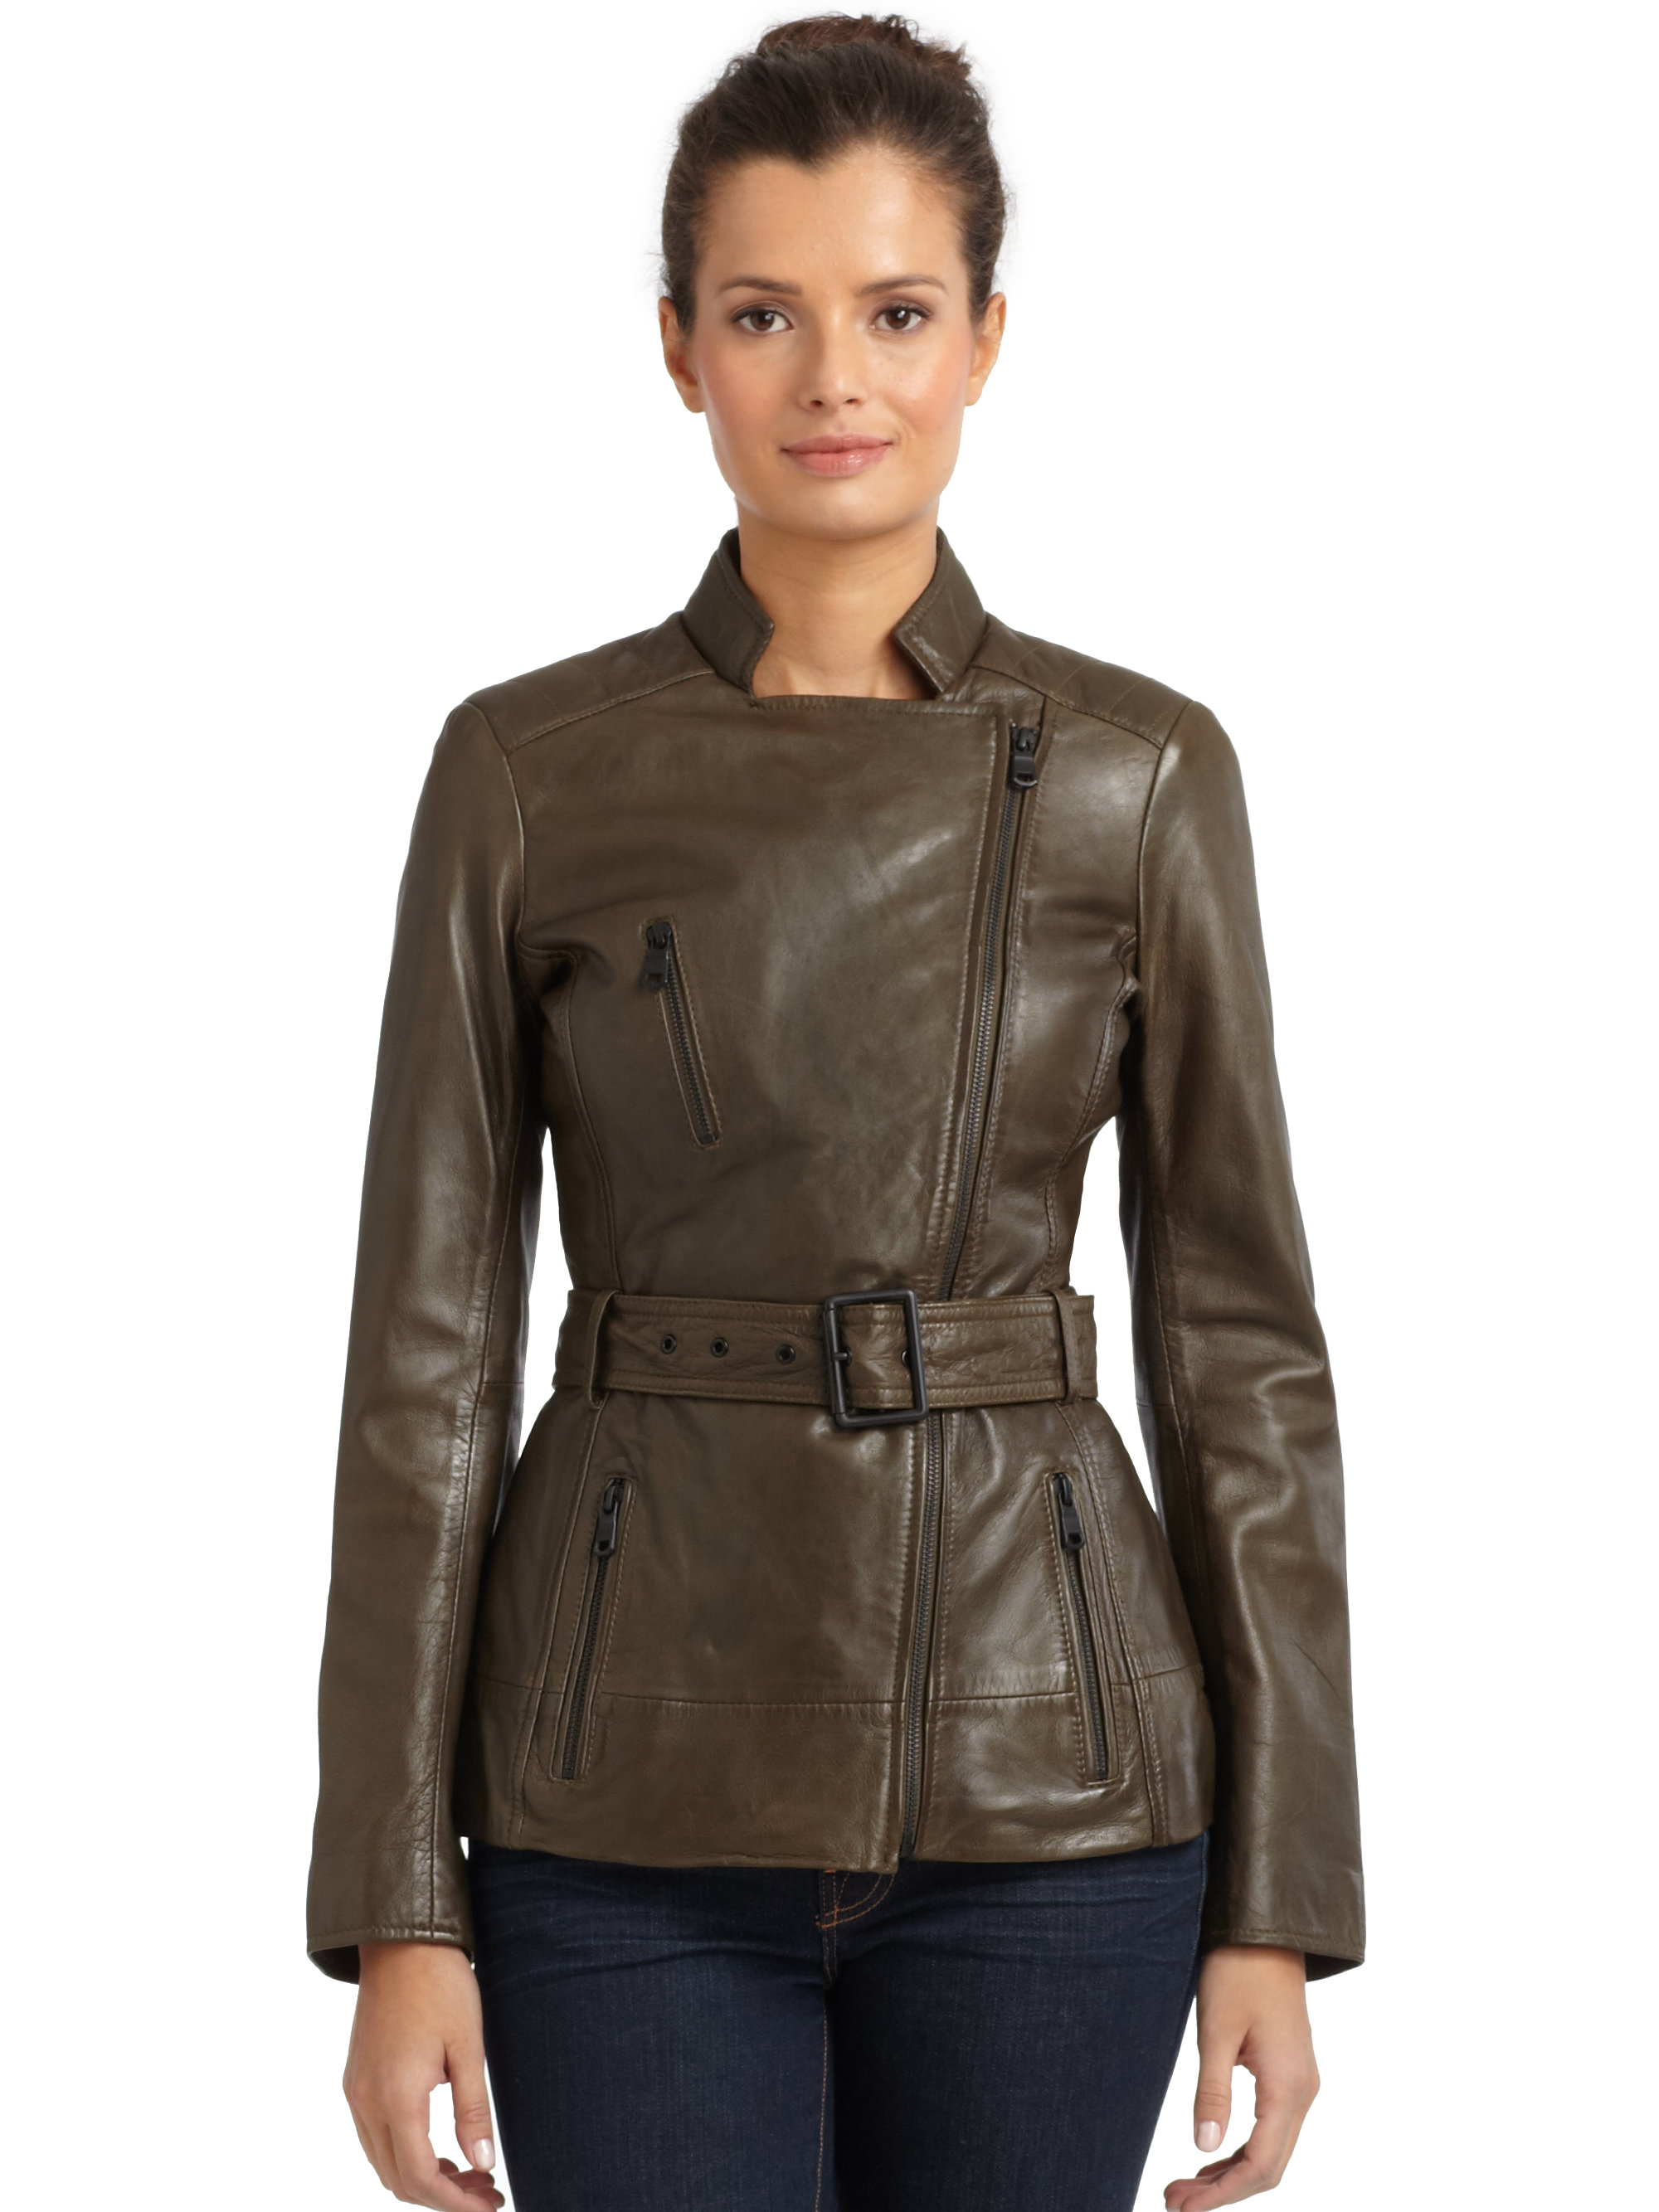 Marc New York Trapper Belted Leather Jacket In Olive